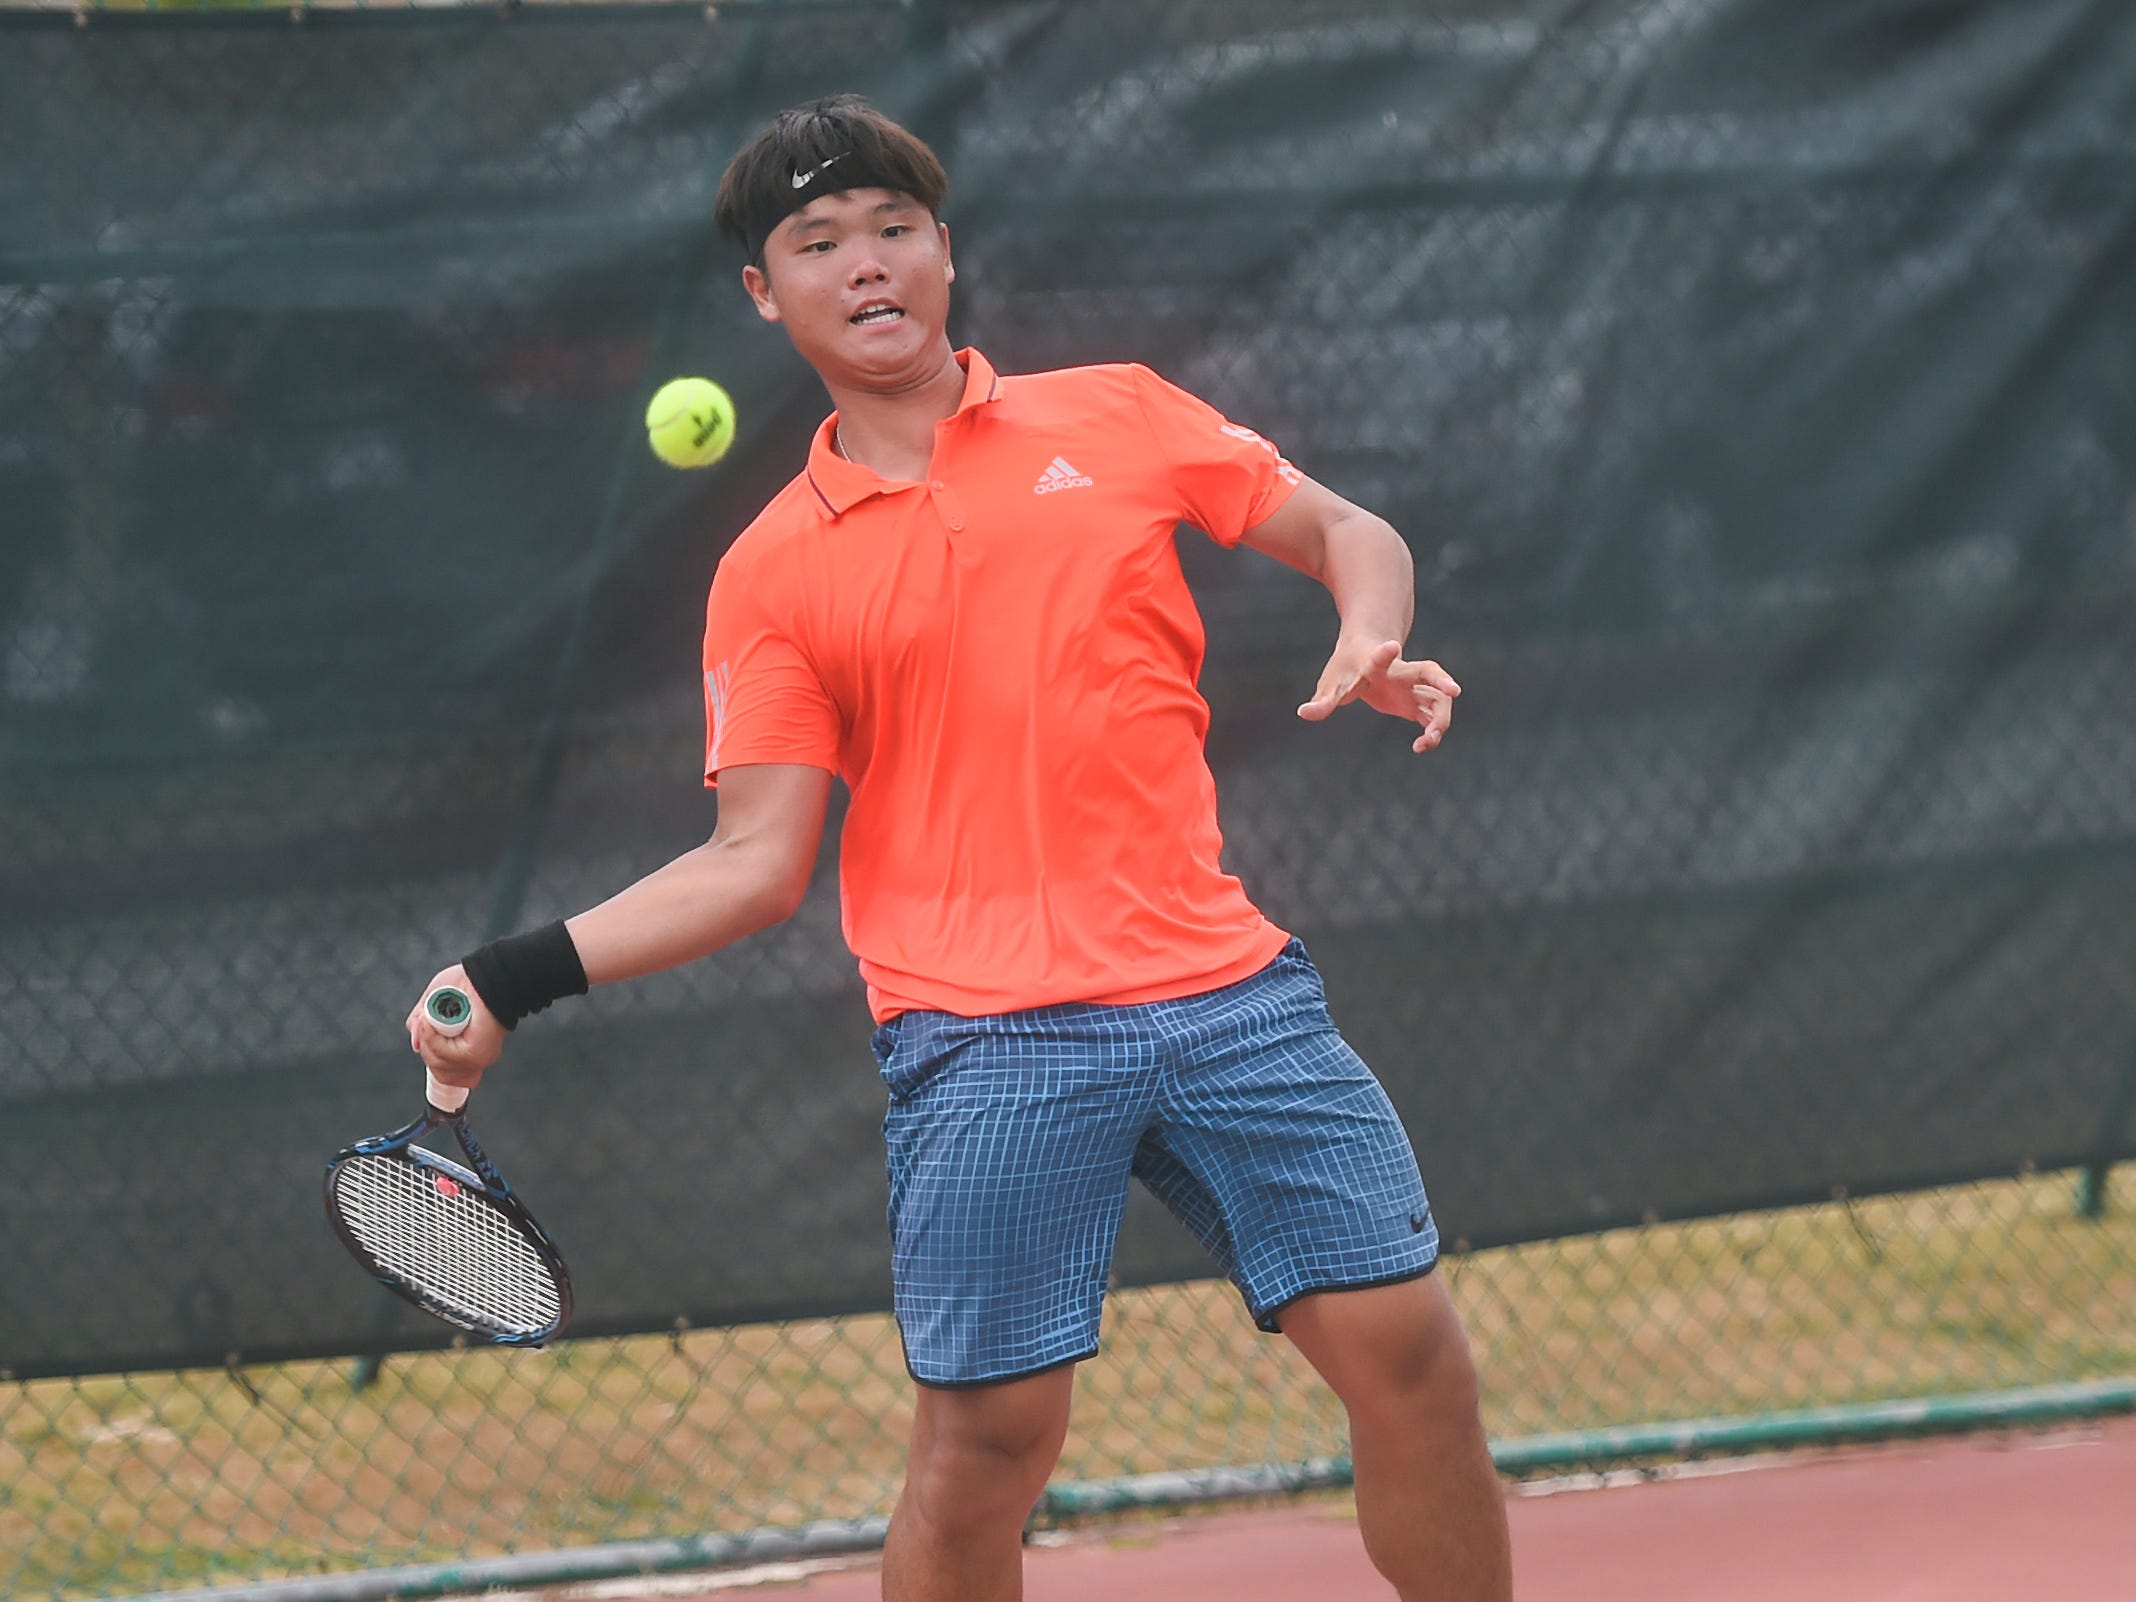 Yung-Chien Chen competes during a 2019 Chuck E Cheese ITF World Tennis Tour Juniors qualifying match at the Hilton Guam Resort and Spa in Tumon, May 12, 2019.